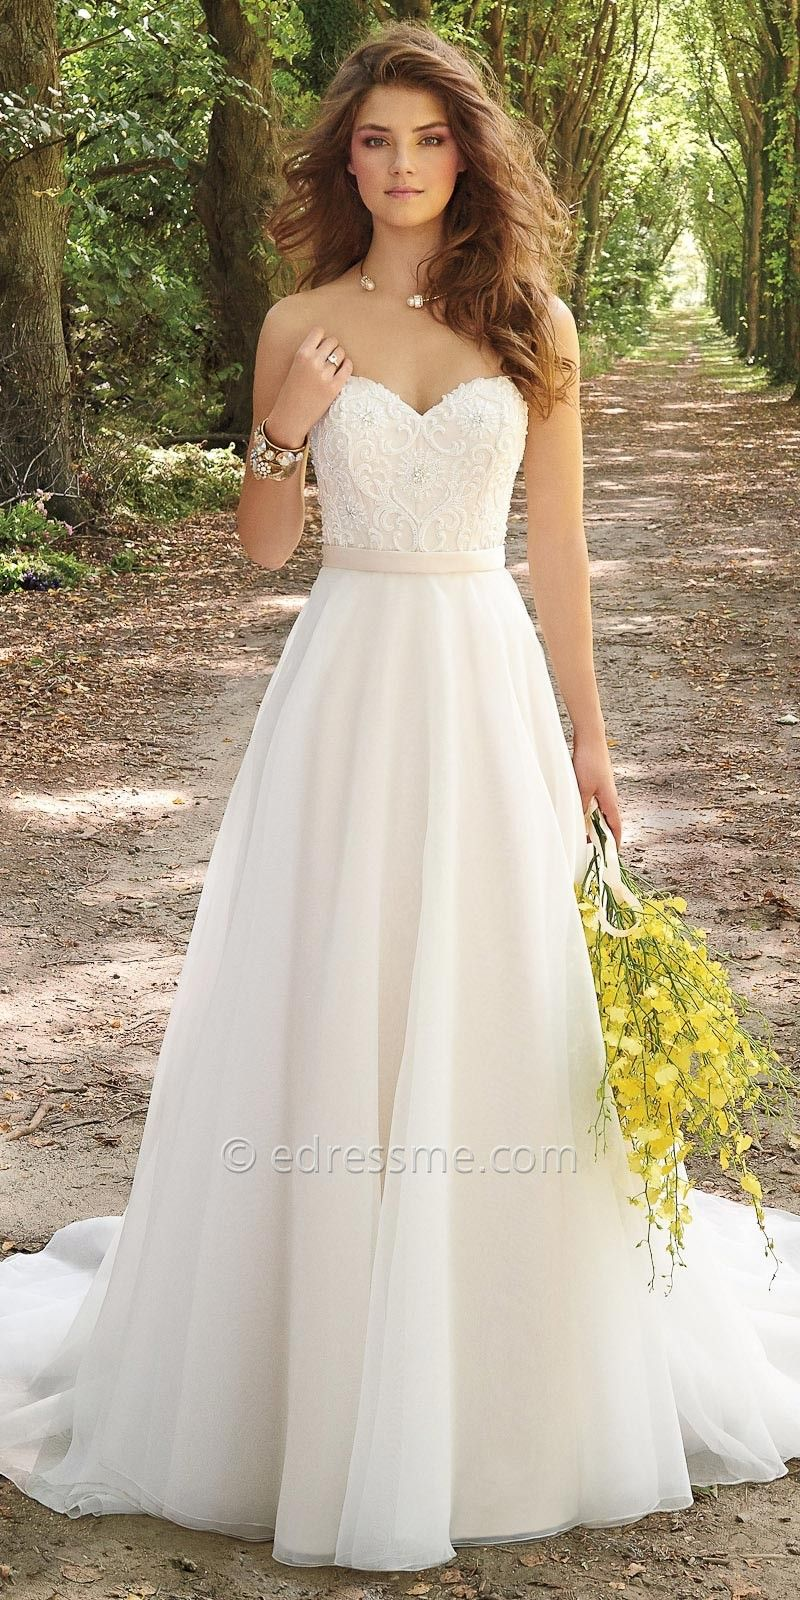 Corset organza wedding dress by camille la vie strapless for Camille la vie wedding dresses